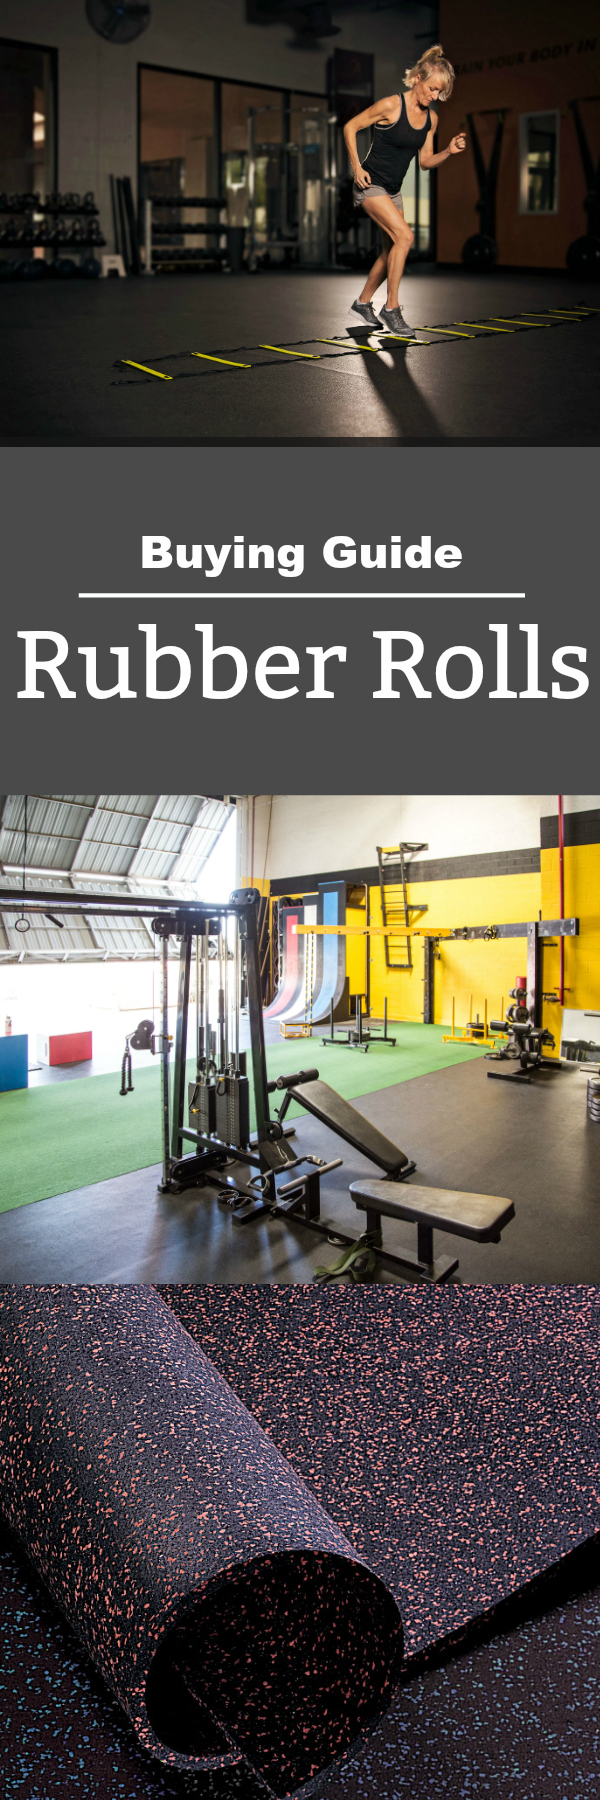 Rubber Flooring Rolls Buying Guide: Learn everything you need to know when you purchase rubber rolls from durability to application to color and design.